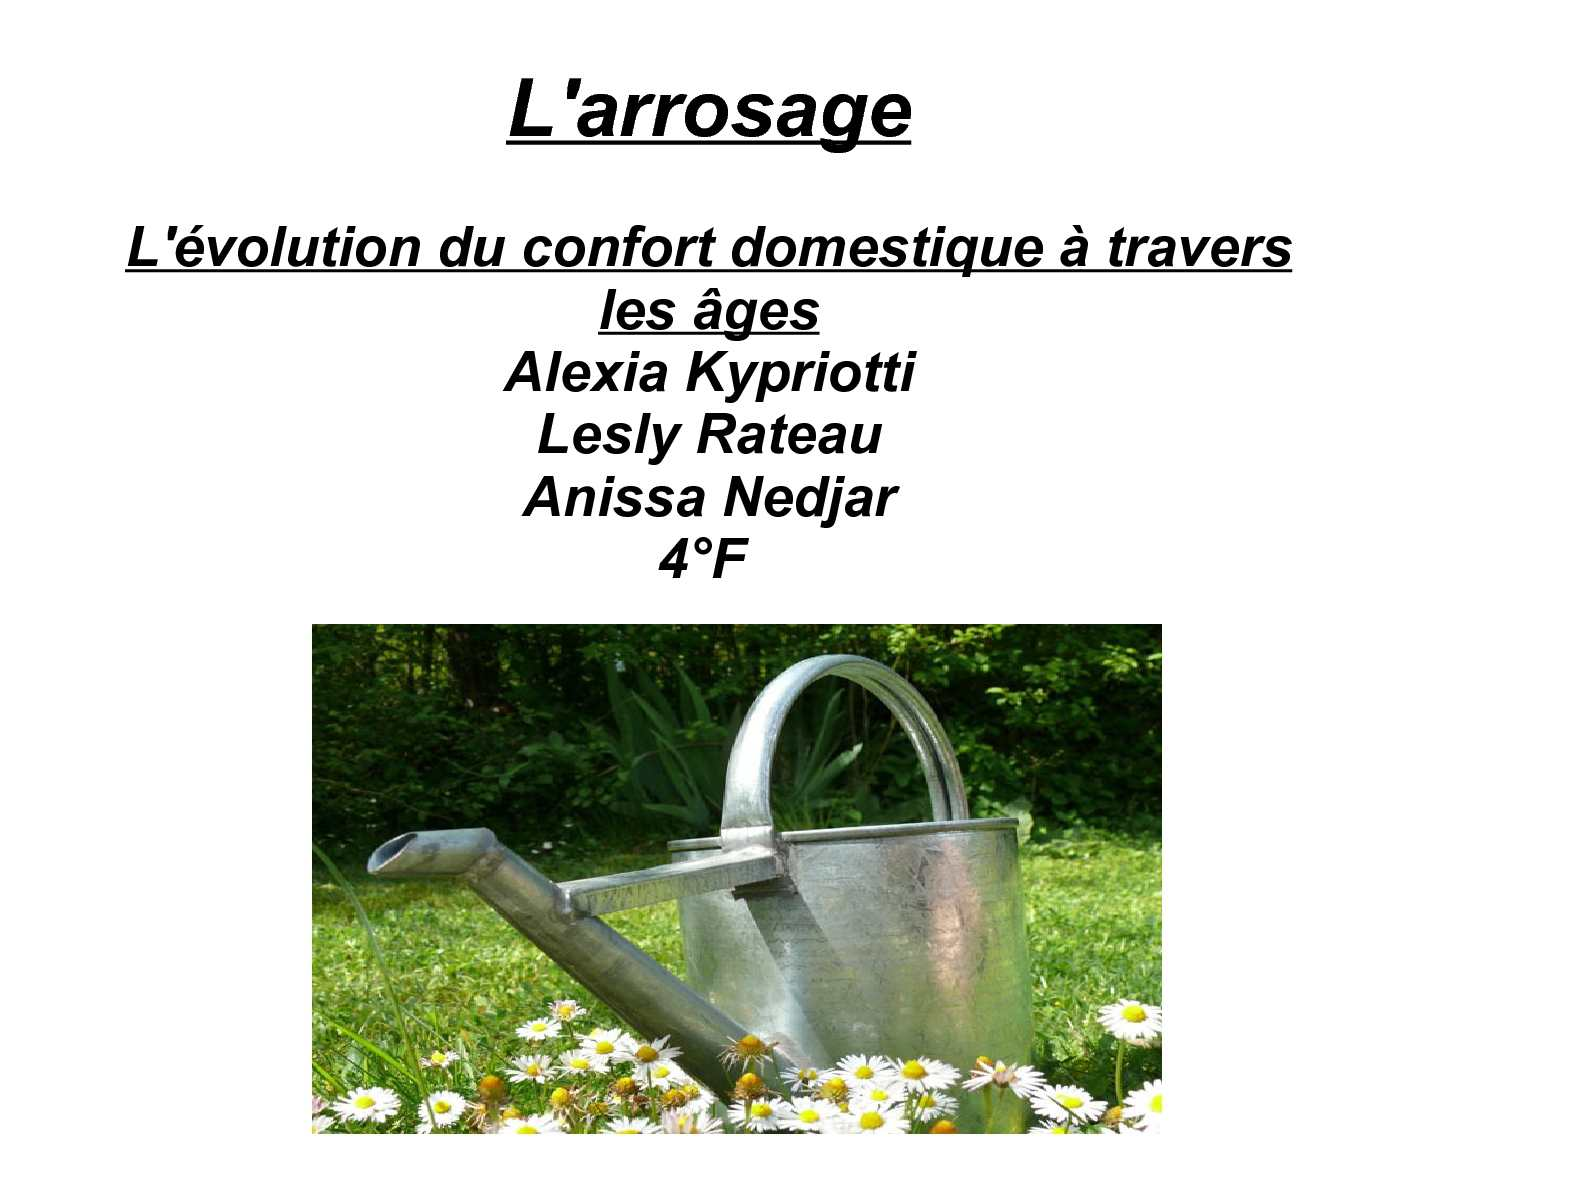 Systeme Arrosage Automatique Potager calaméo - technique d'arrosage à travers le temps .